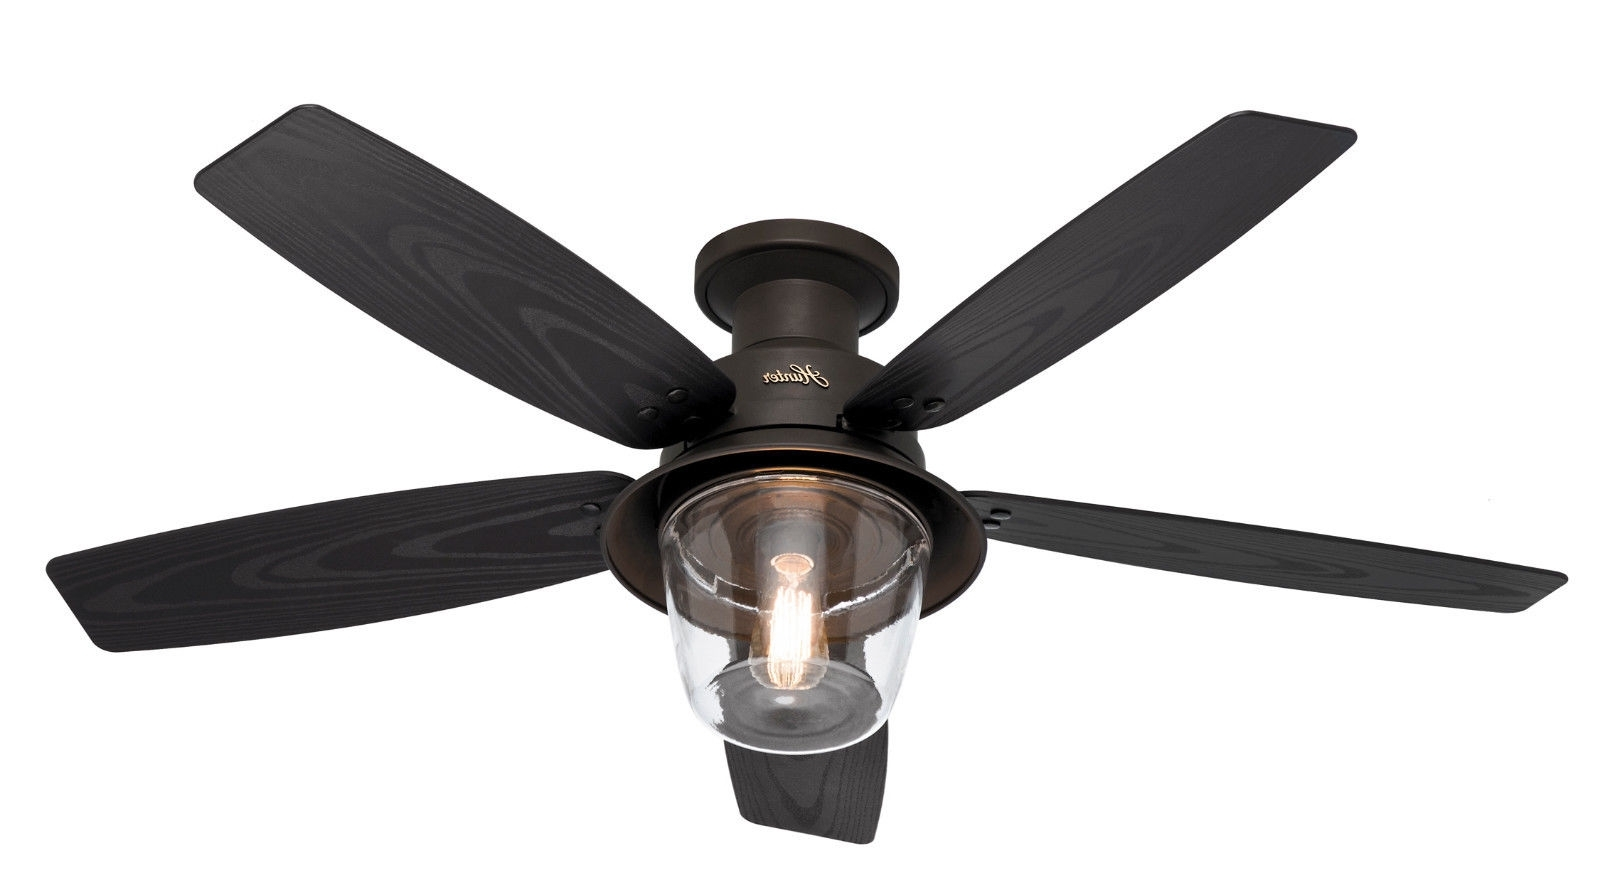 Industrial Outdoor Ceiling Fans With Light With 2018 Ceiling Fan: Breathtaking Black Industrial Ceiling Fan Ideas (View 15 of 20)